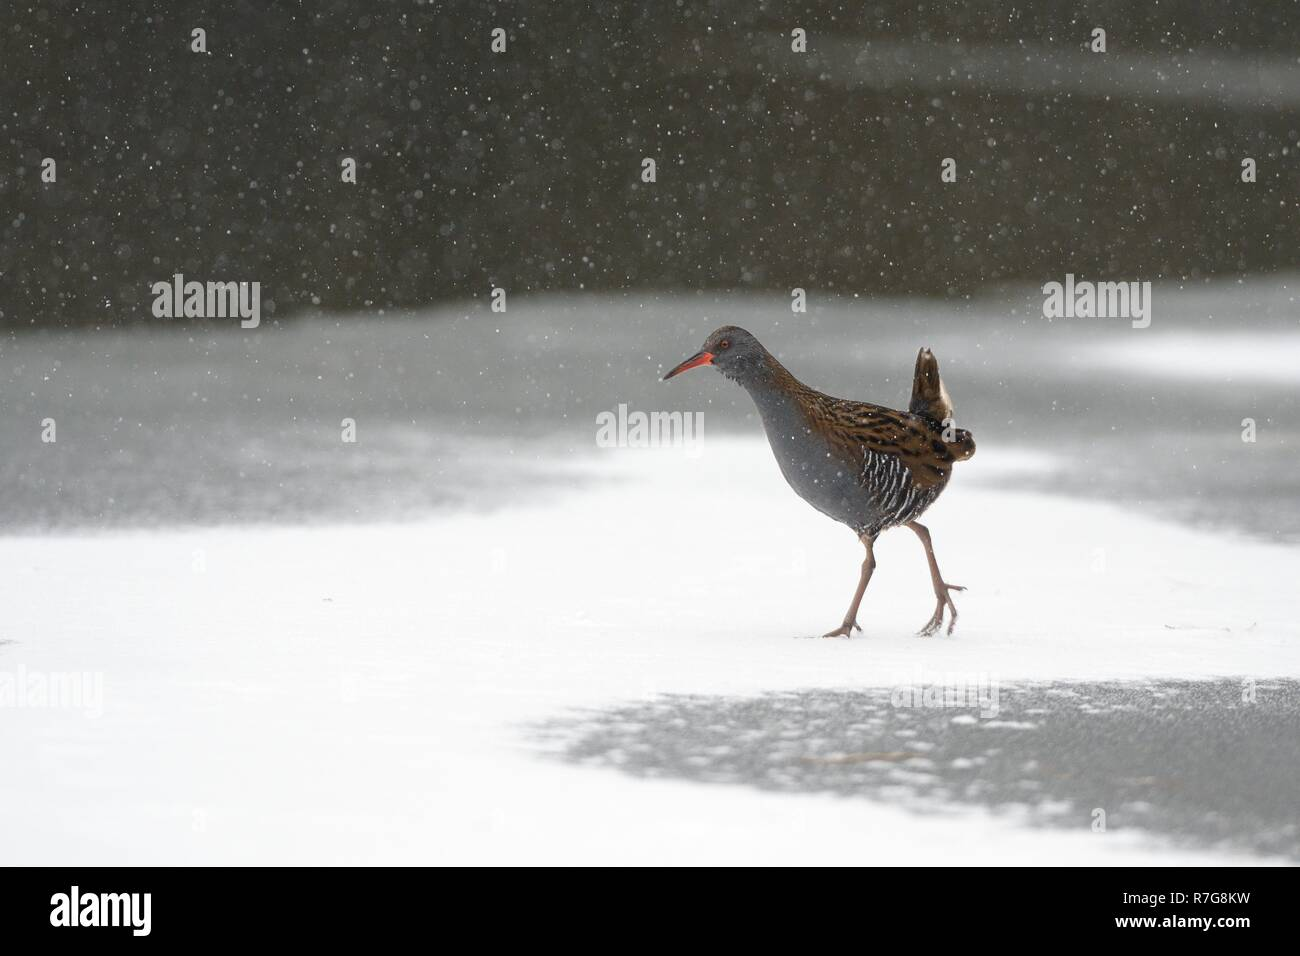 Water rail (Rallus aquaticus) walking on frozen, snow covered lake surface in falling snow, Wiltshire, UK, March. - Stock Image